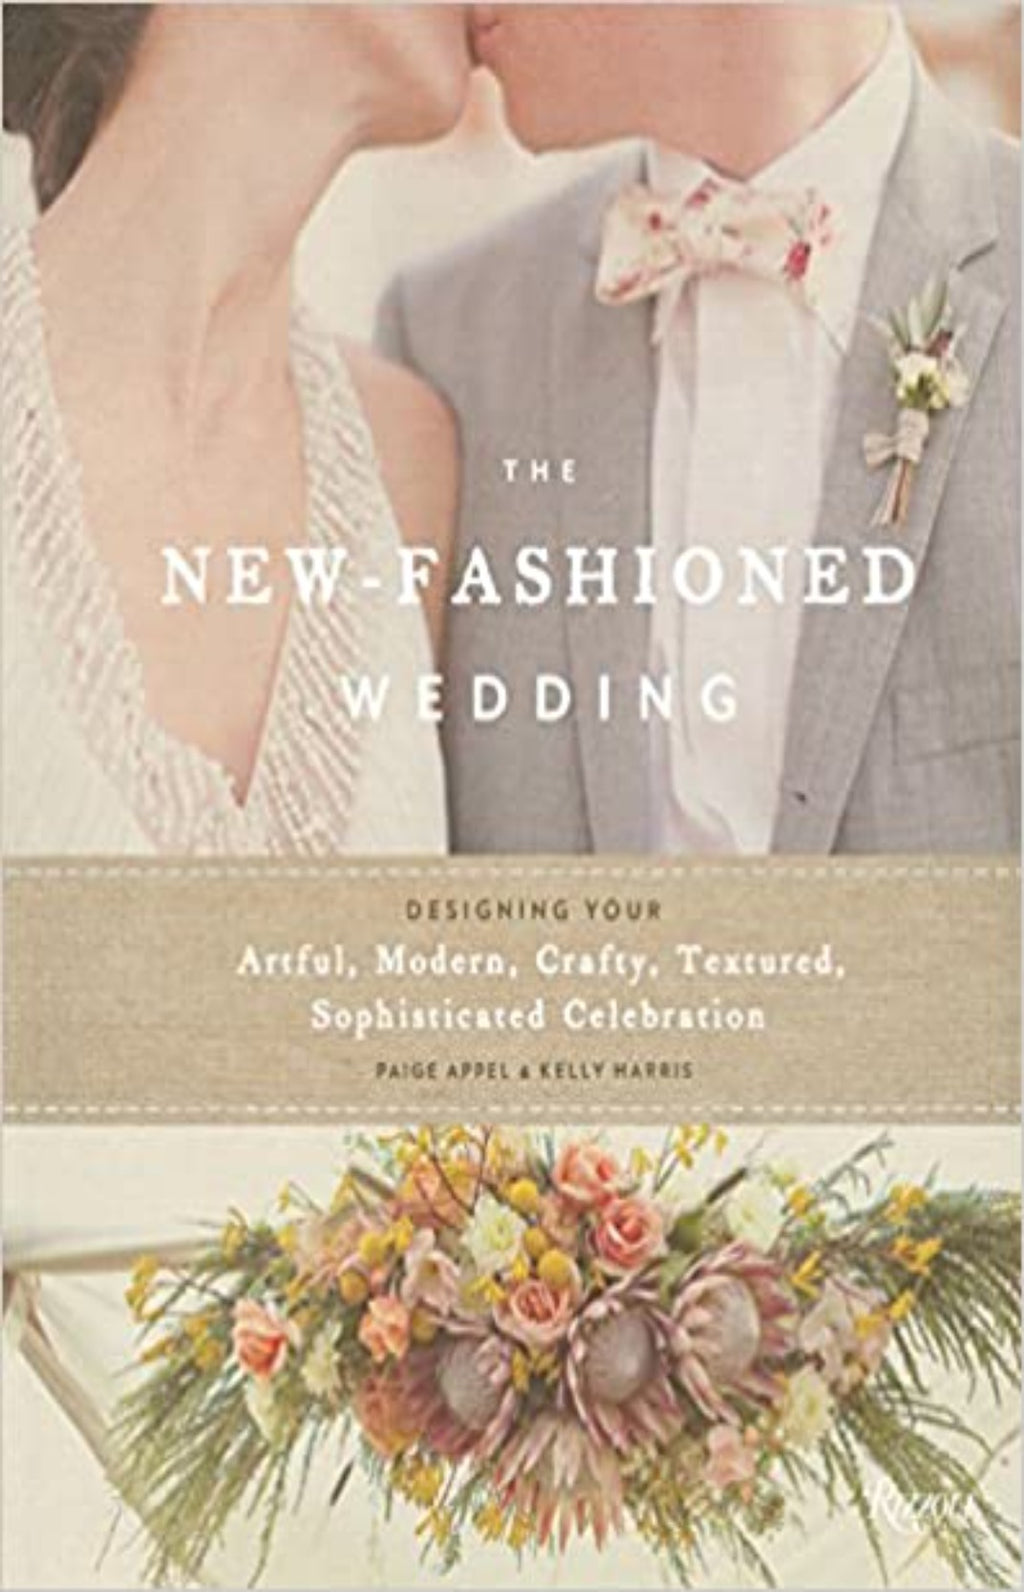 The New-Fashioned Wedding : Designing Your Artful, Modern, Crafty, Textured, Sophisticated Celebration